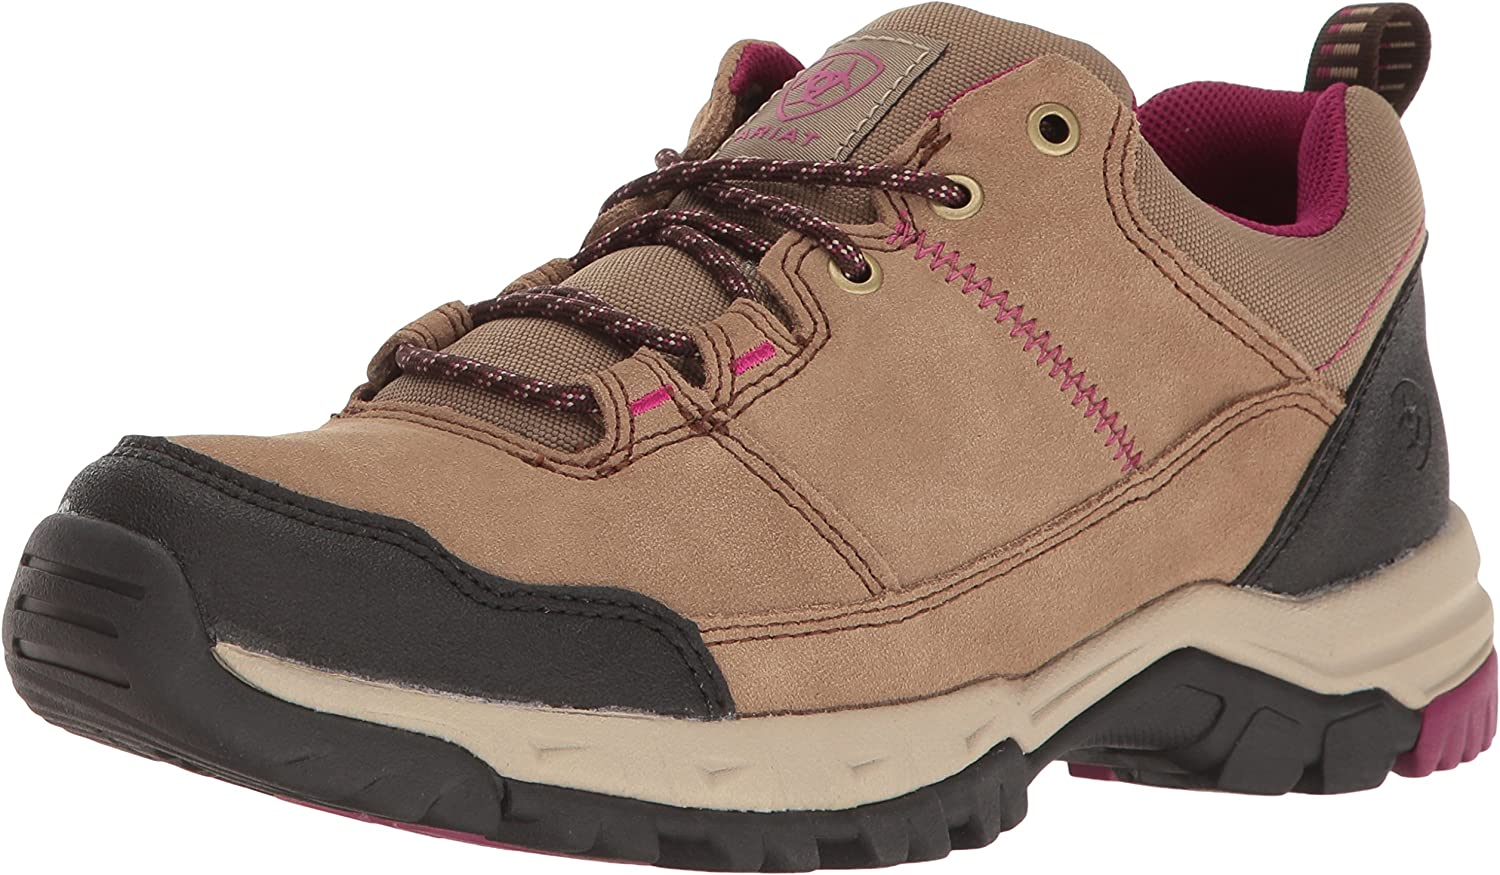 Ariat Womens Skyline Lo Lace Hiking shoes